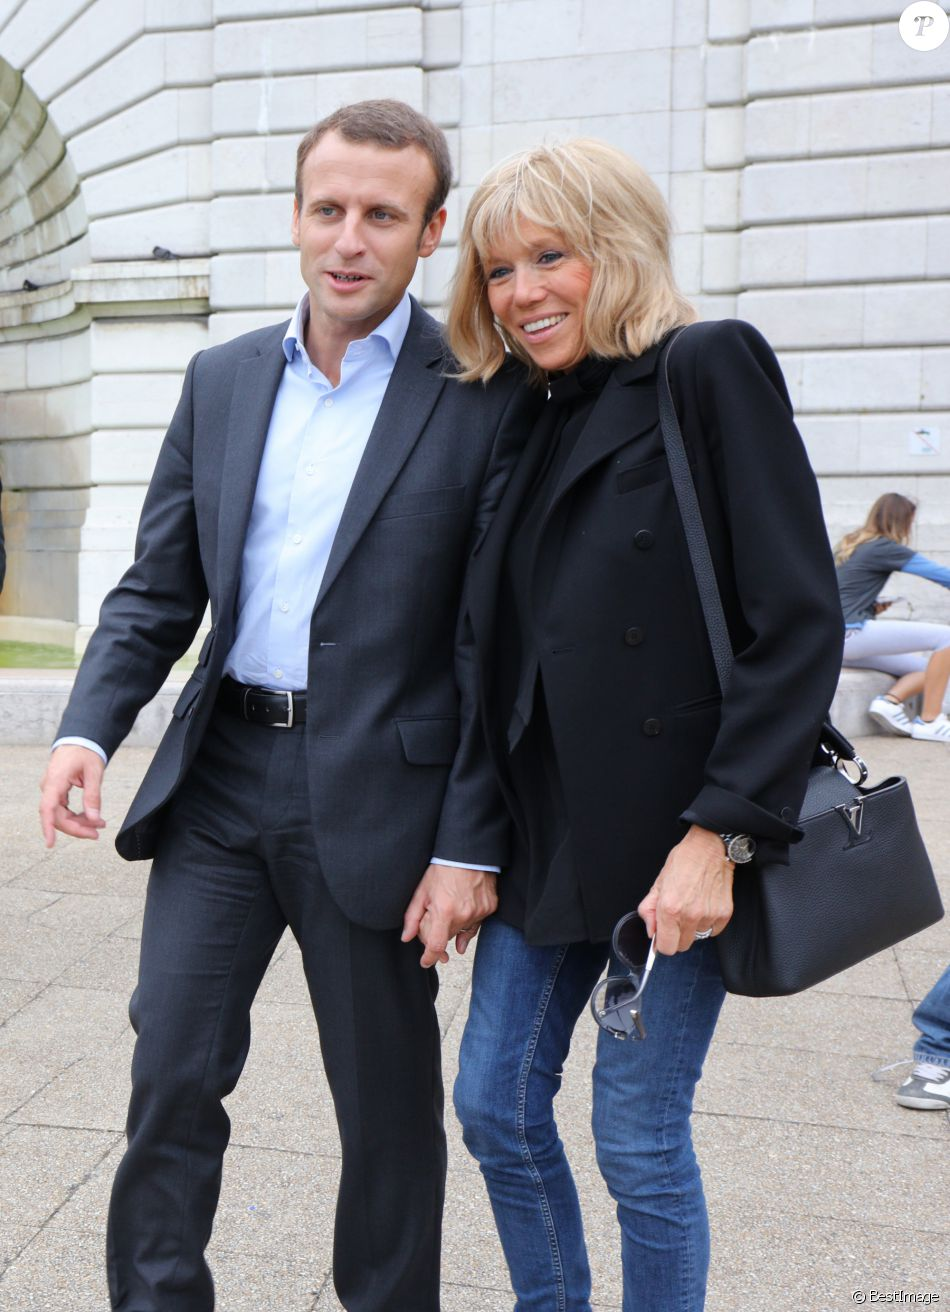 brigitte macron l 39 intime portrait j 39 ai t une adolescente en souffrance purepeople. Black Bedroom Furniture Sets. Home Design Ideas